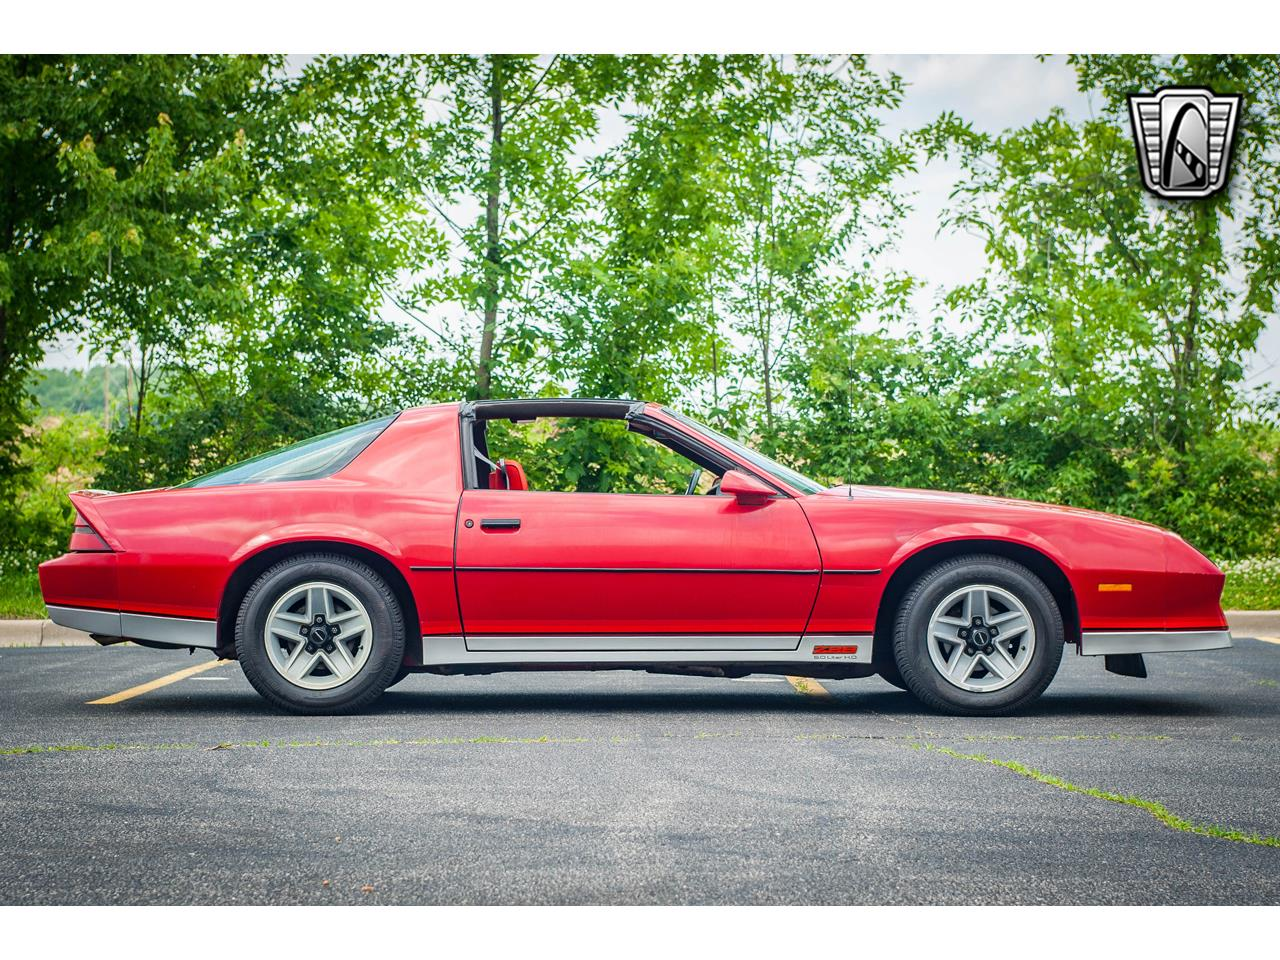 Large Picture of 1984 Chevrolet Camaro - $9,500.00 Offered by Gateway Classic Cars - St. Louis - QB9Y